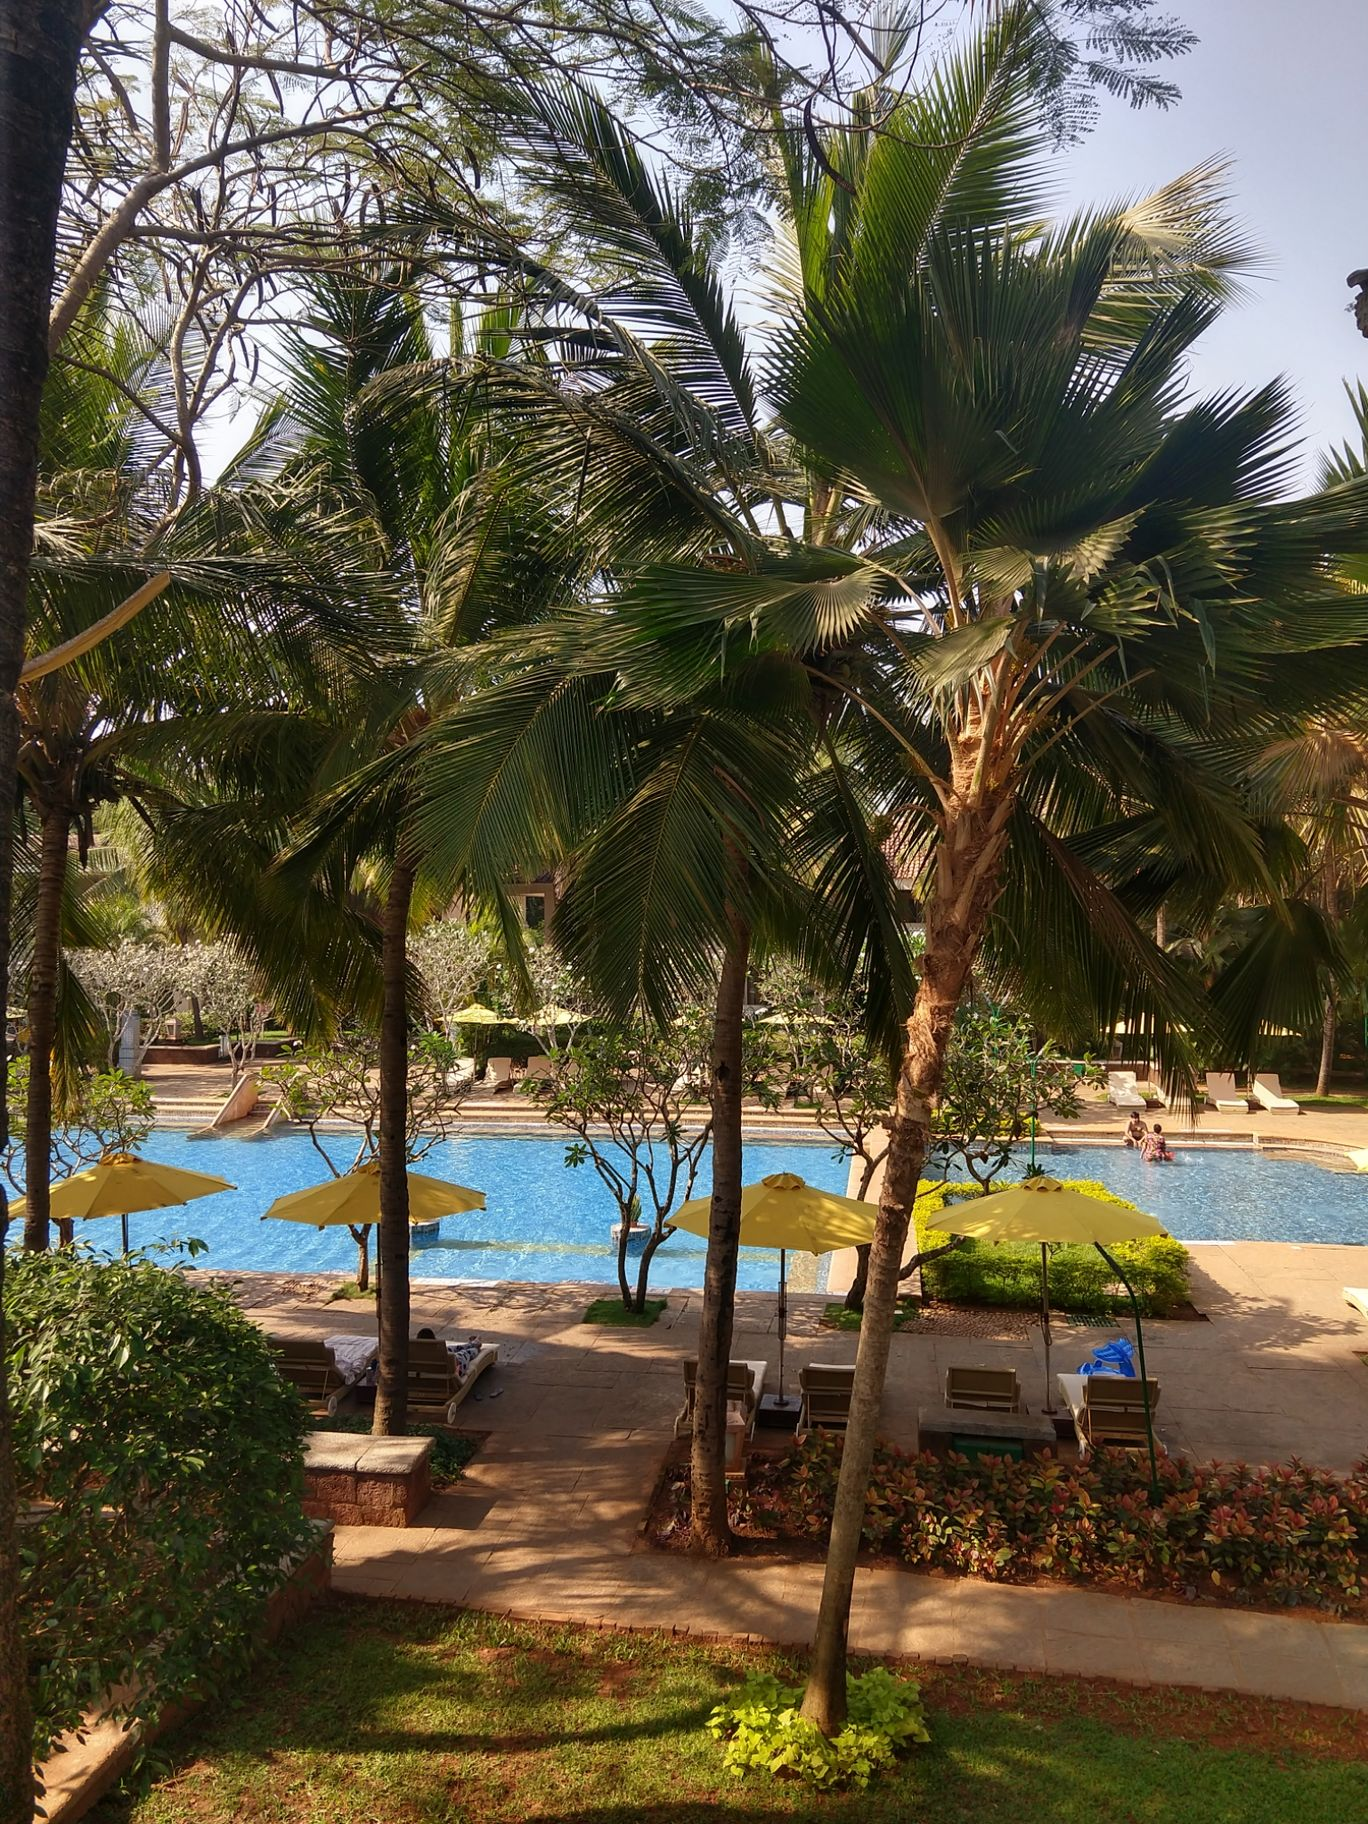 Photo of Club Mahindra Varca Beach By Shruti Hariharan